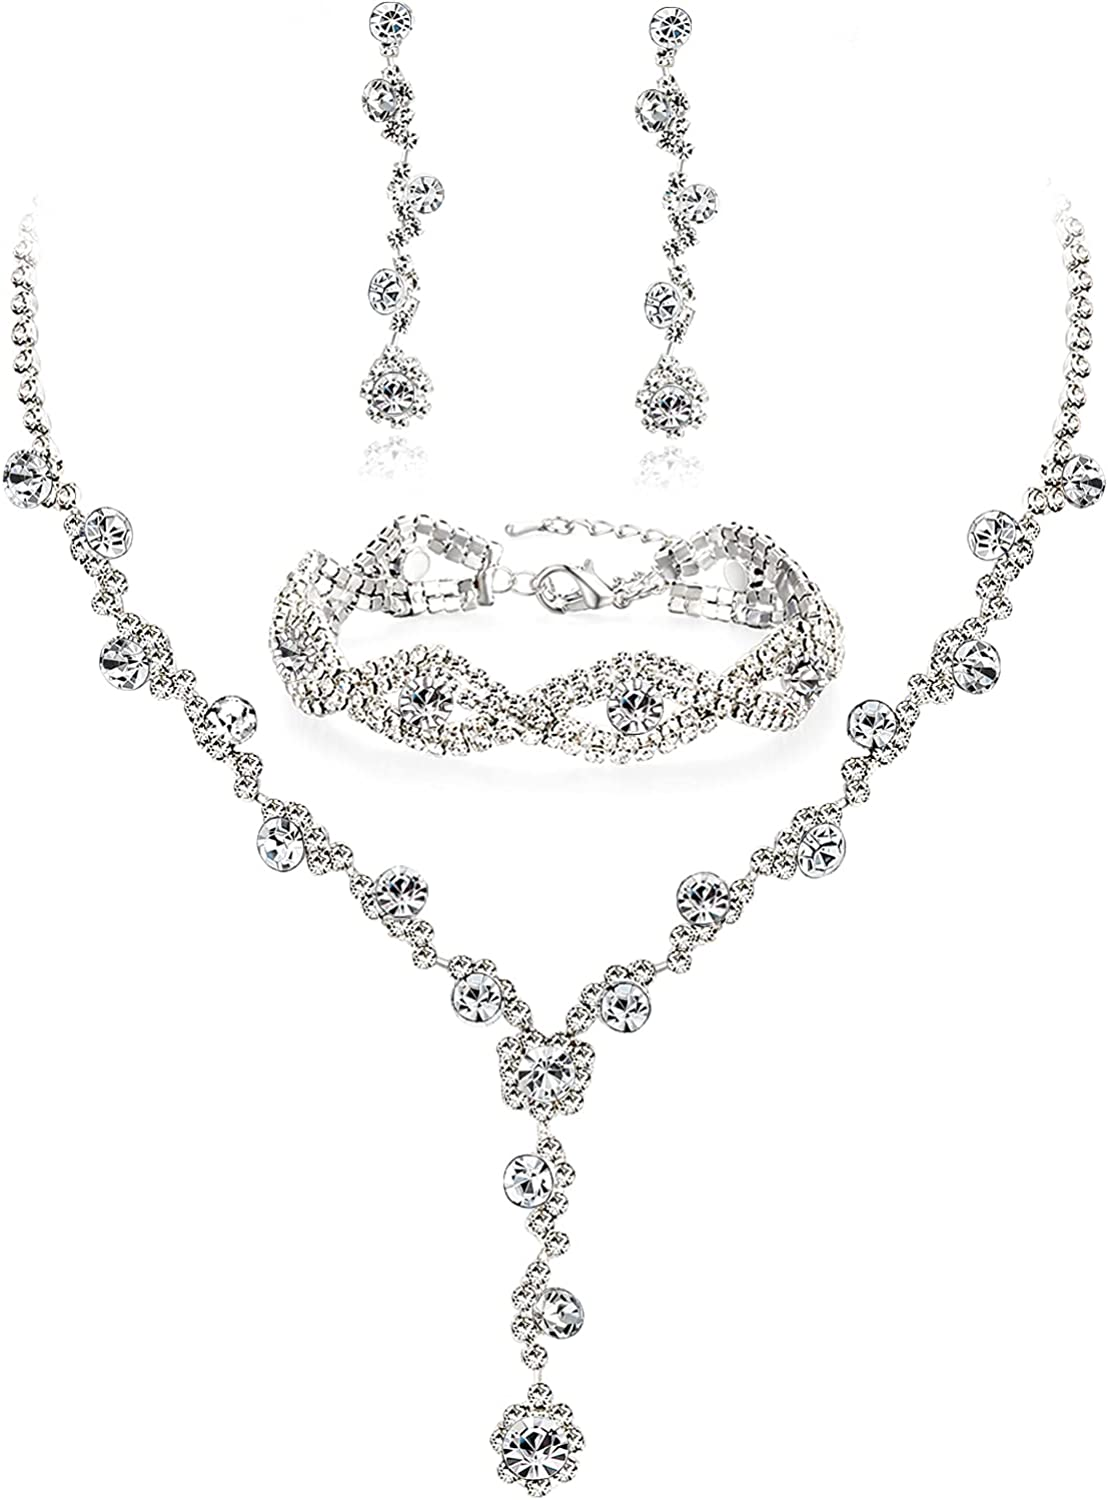 YANODA Rhinestone Bridal Jewelry Sets for Women Crystal Necklace Earrings Bracelet Jewelry Sets for Wedding Bridal Bridesmaid Gifts Evening Party Prom Jewelry Set